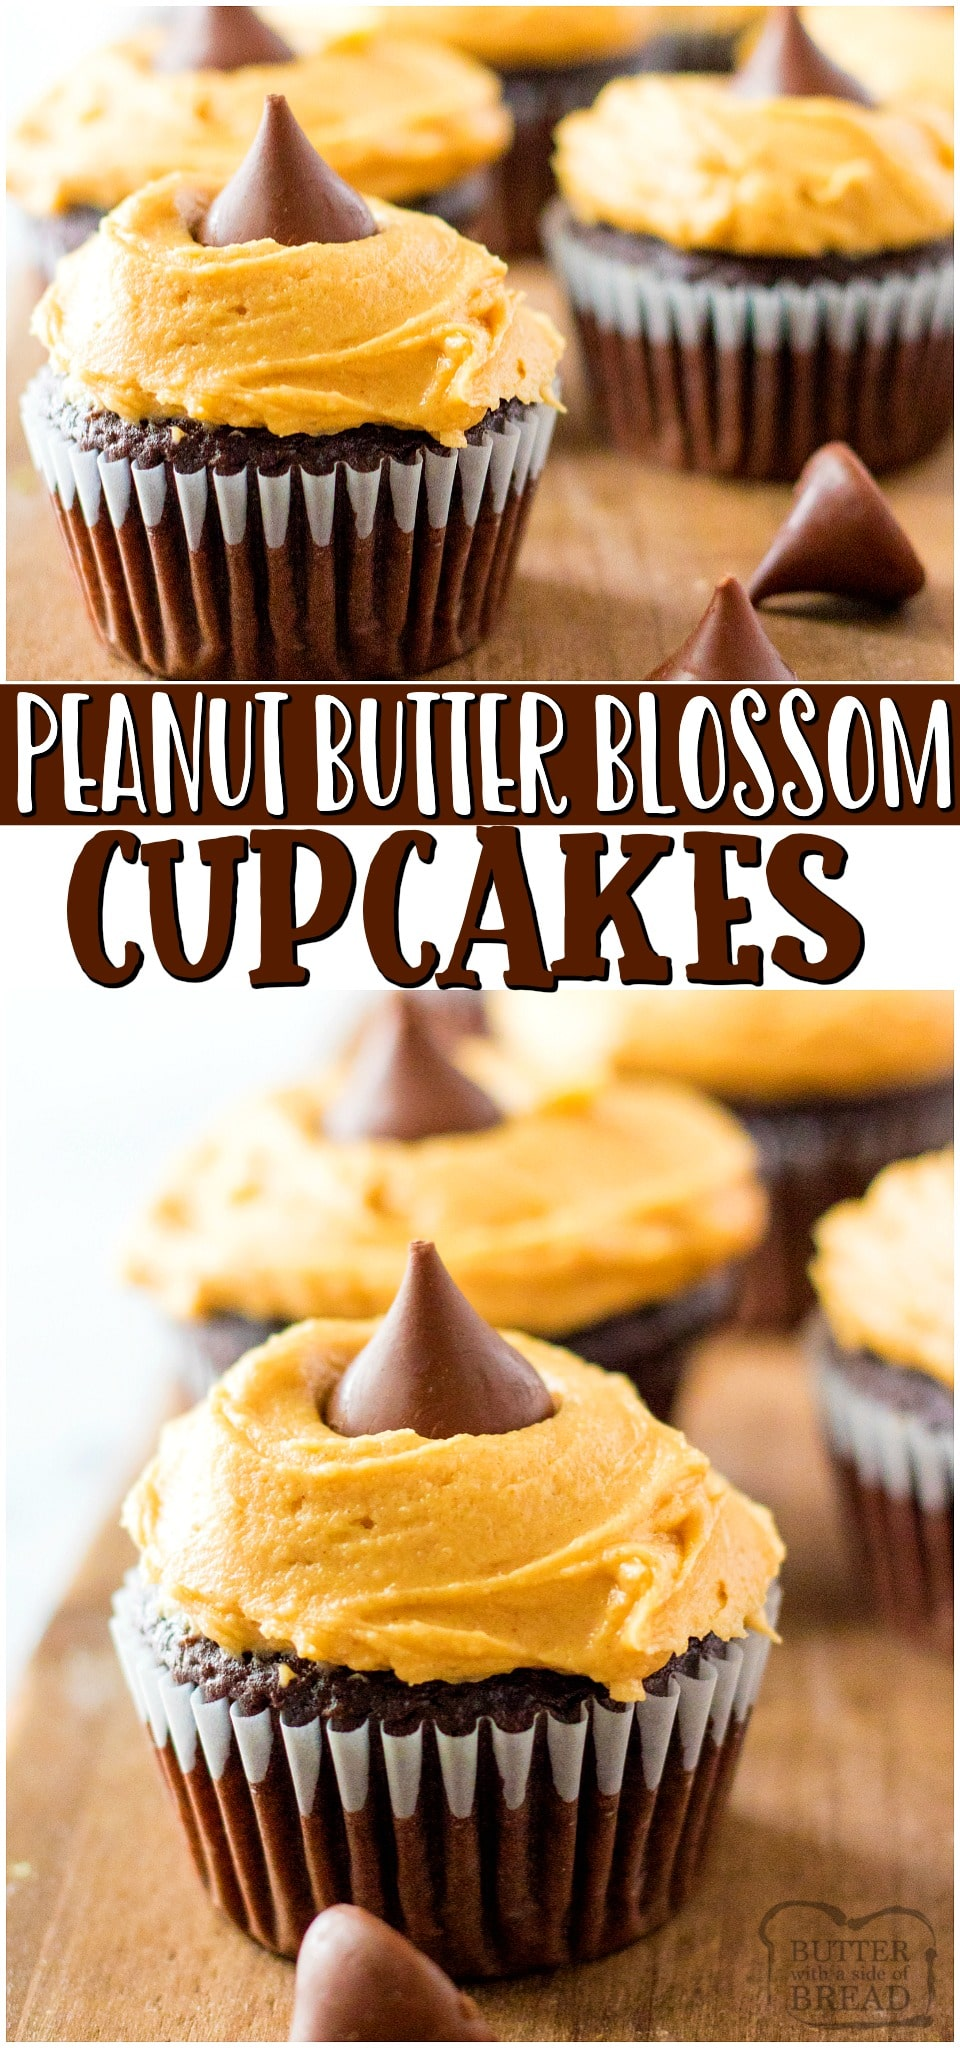 Peanut butter blossom cupcakes~ a fun twist on traditional peanut butter blossom cookies! Chocolate cupcakes topped with Peanut butter cream cheese frosting & a chocolate kiss are a delicious treat!